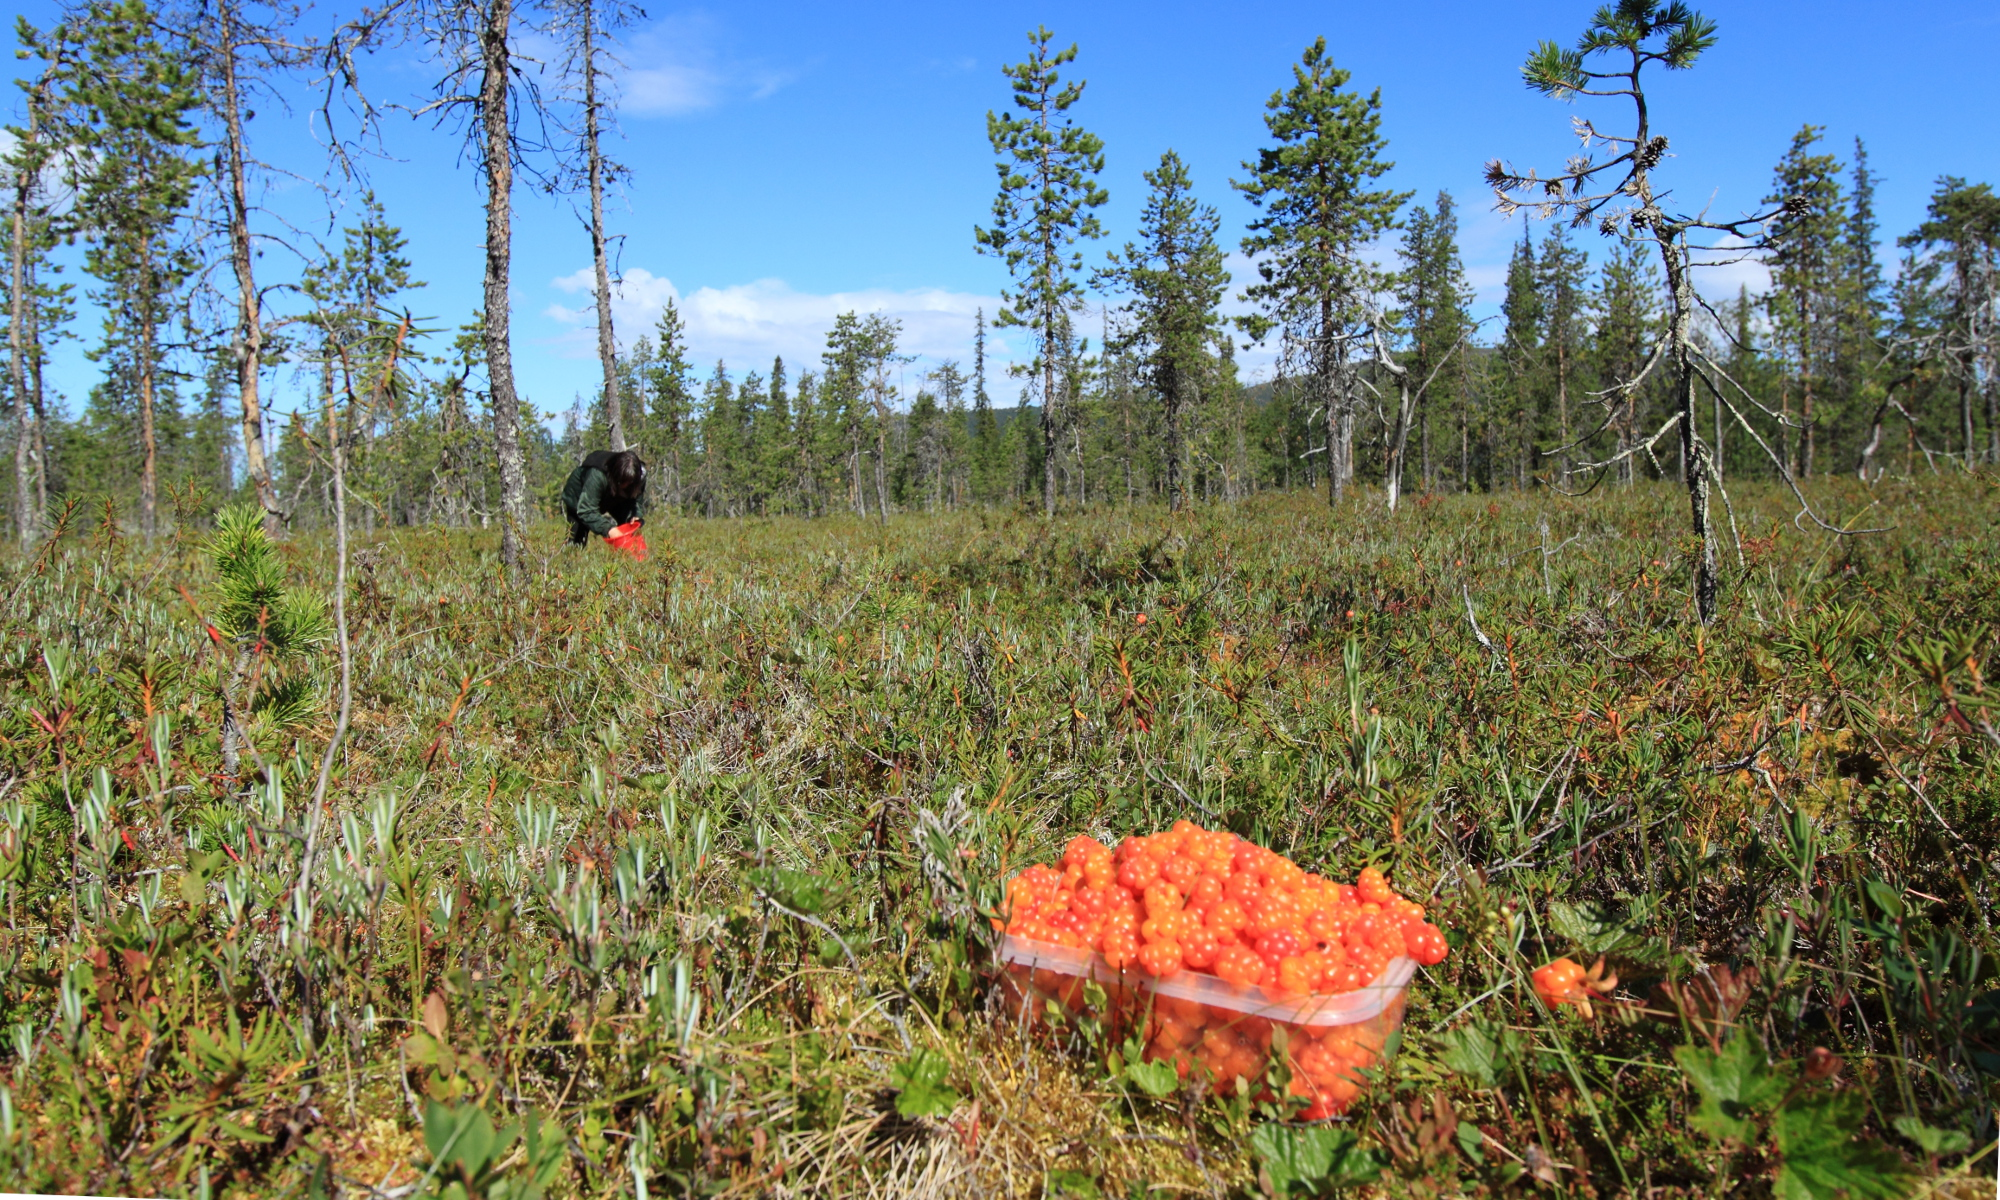 Berry picking in Lapland